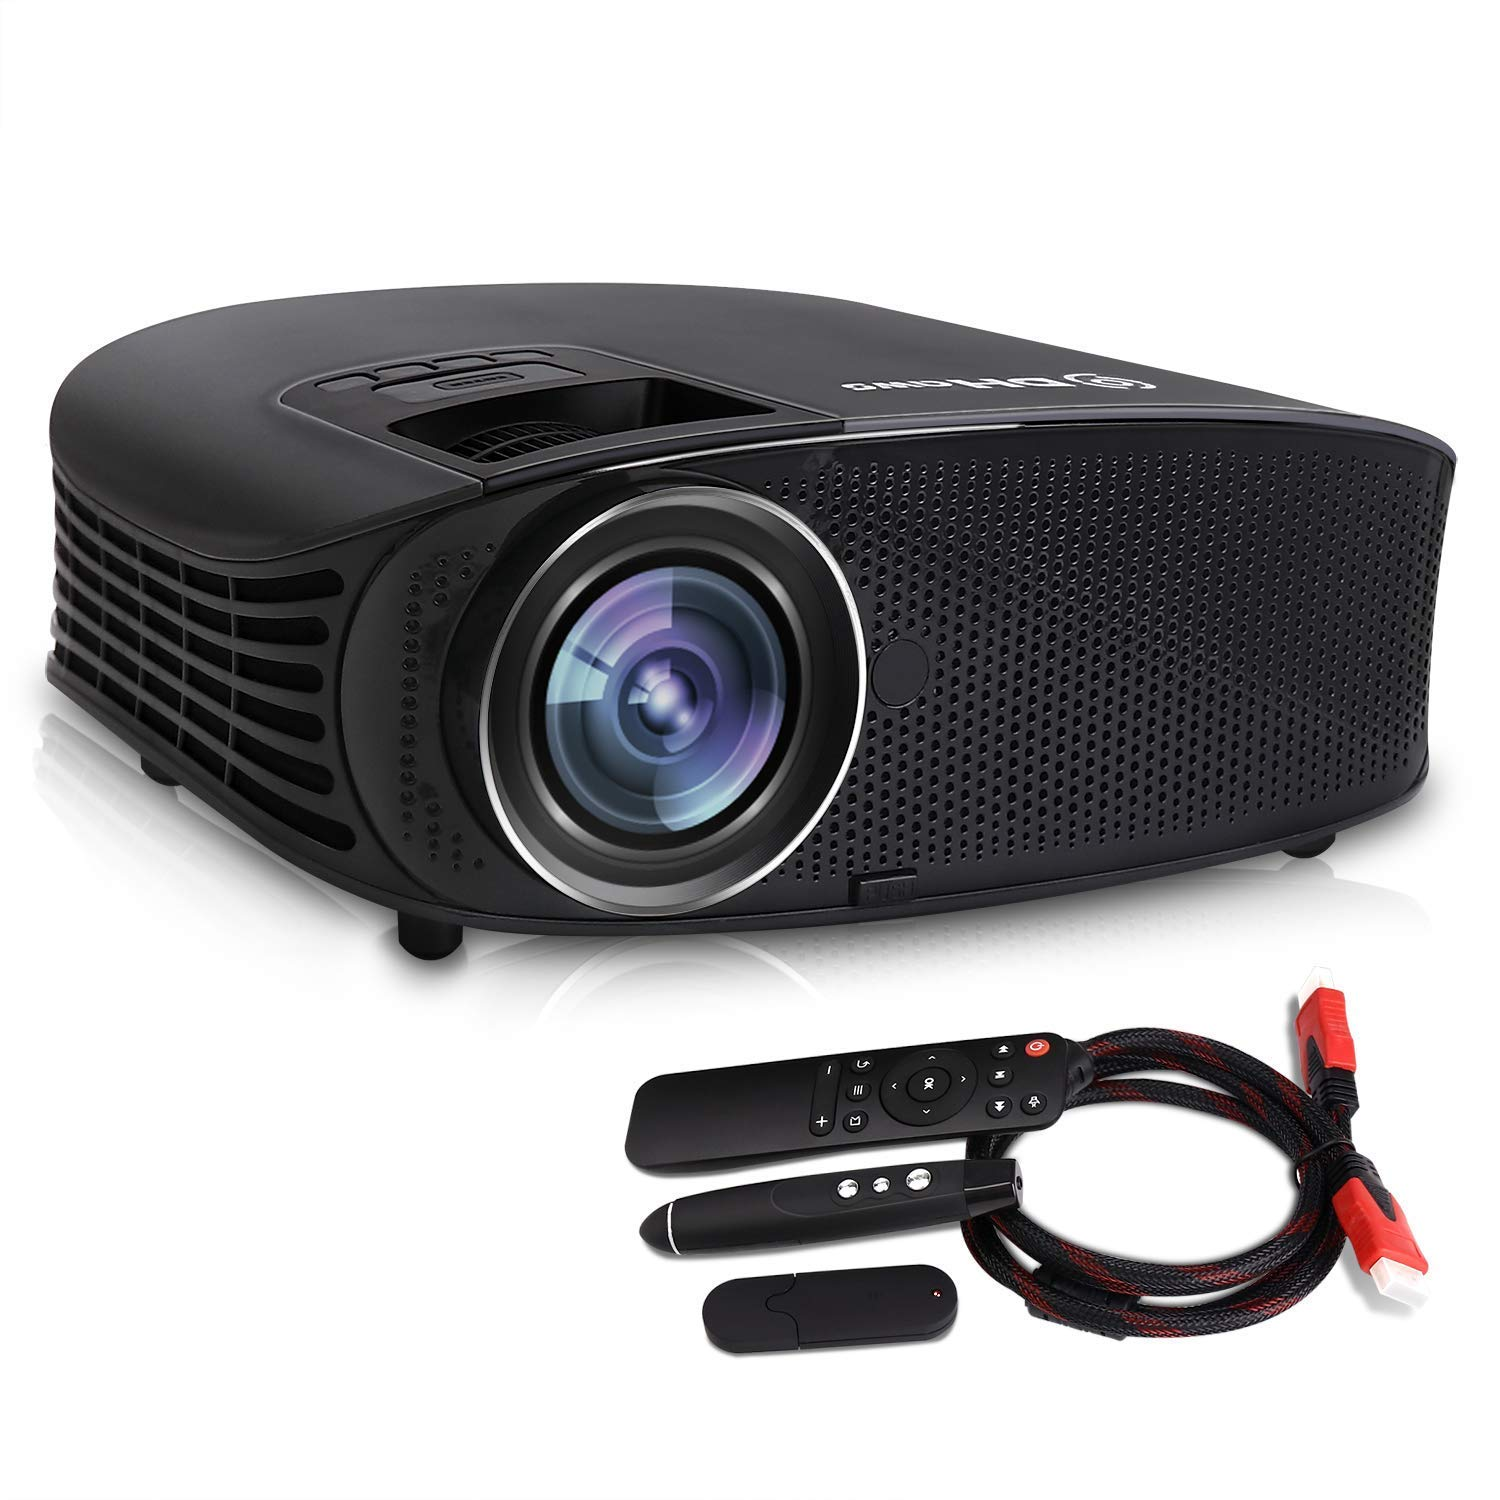 Video Projector,DHAWS 3800LM 1080P Full HD HDMI Office Projector for Laptop Business PowerPoint Presentation and Home Theater,with PPT Clicker